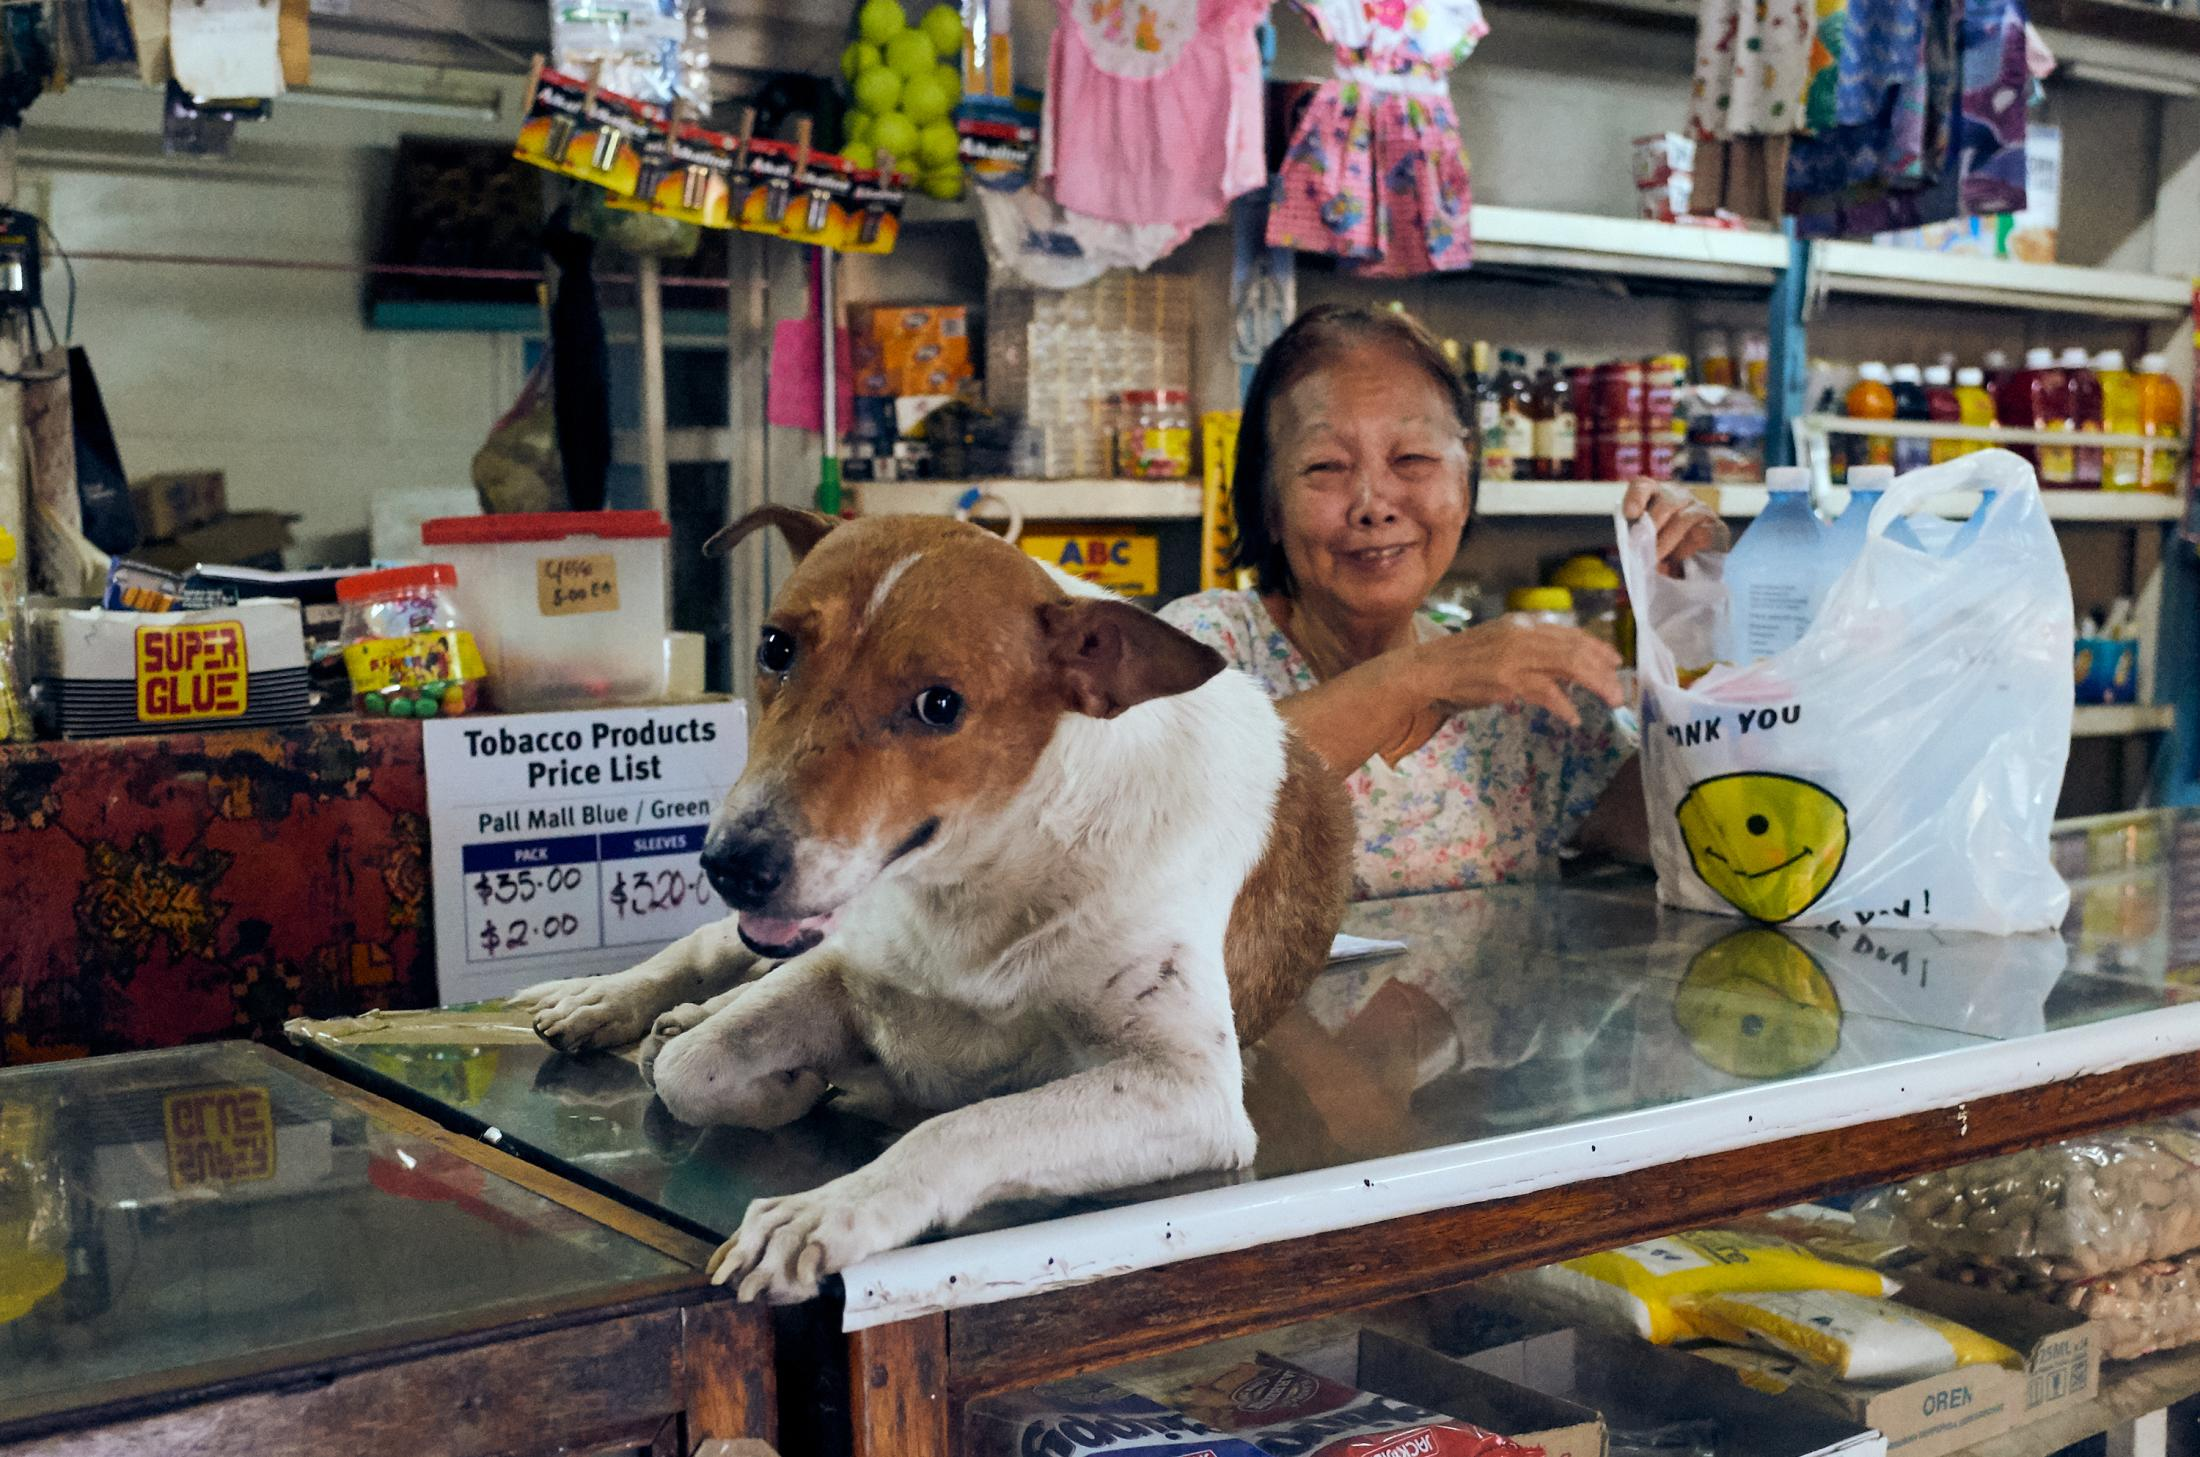 A shopkeeper and her dog in central Auki, Malaita province, Solomon Islands.